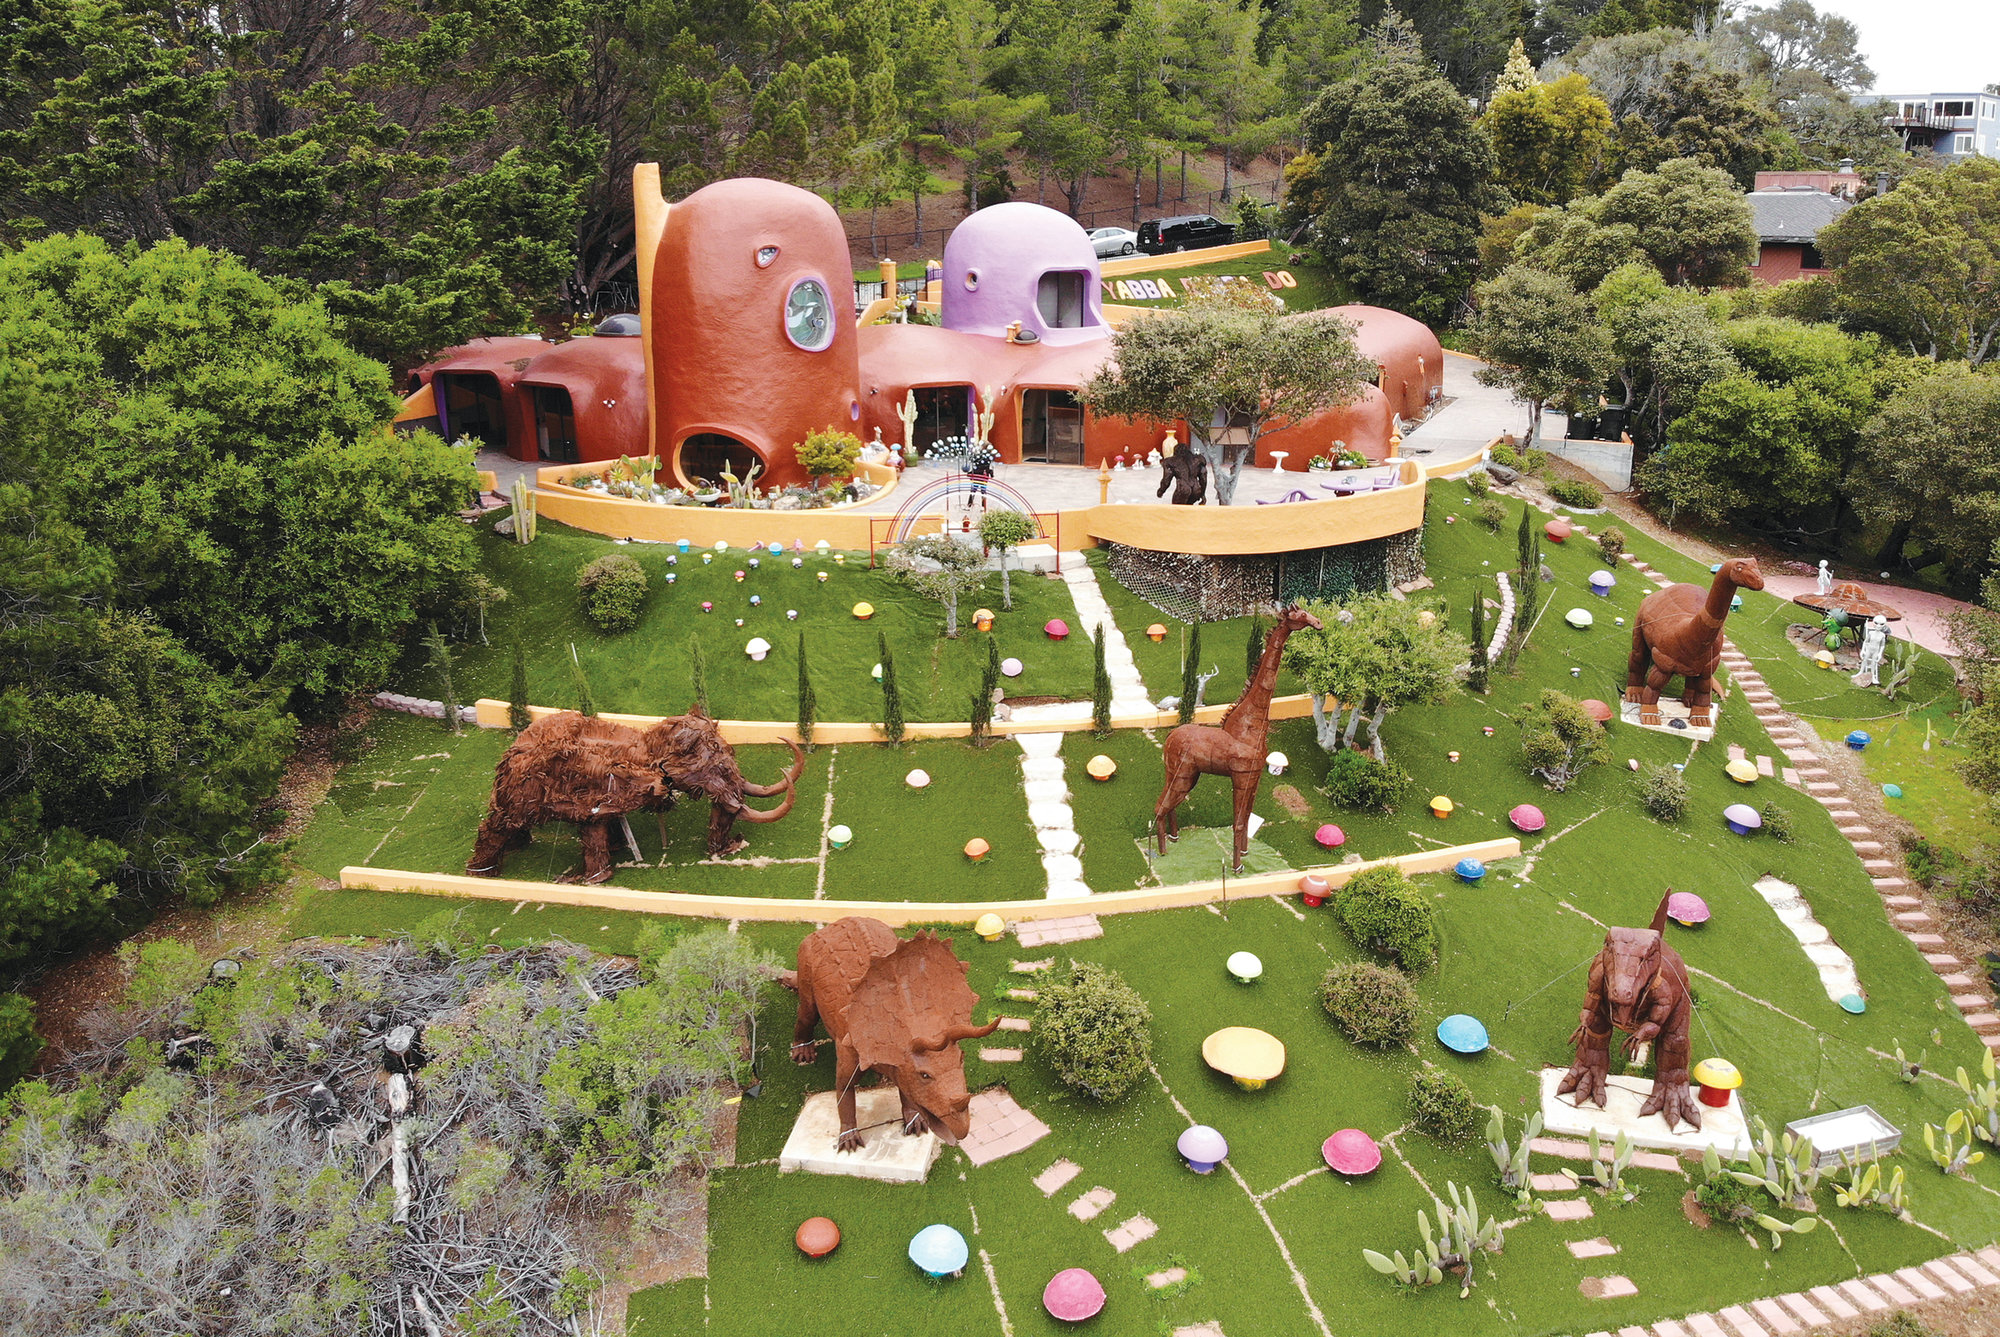 Seen is an aerial view of the Flintstone House in Hillsborough, California. The San Francisco Bay Area suburb of Hillsborough is suing the owner of the house, saying that she installed dangerous steps, dinosaurs and other Flintstone-era figurines without necessary permits. The owner and her attorney say they will fight for the rights of property owners and Fred and Barney fans everywhere.